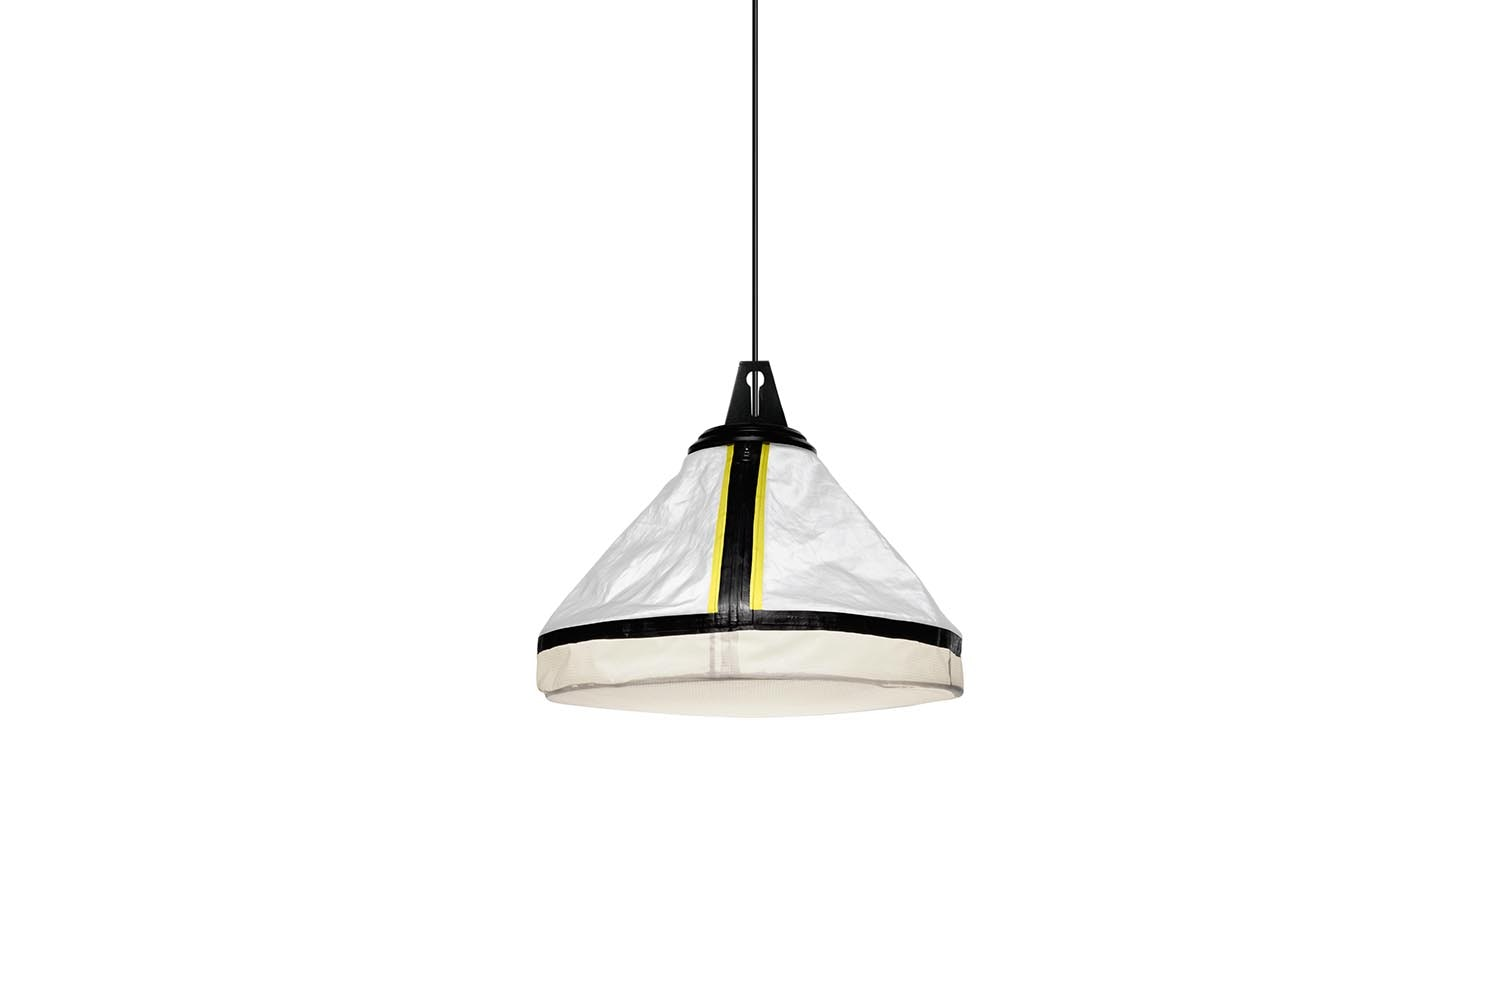 Drumbox Suspension Lamp by Successful Living from DIESEL for Foscarini